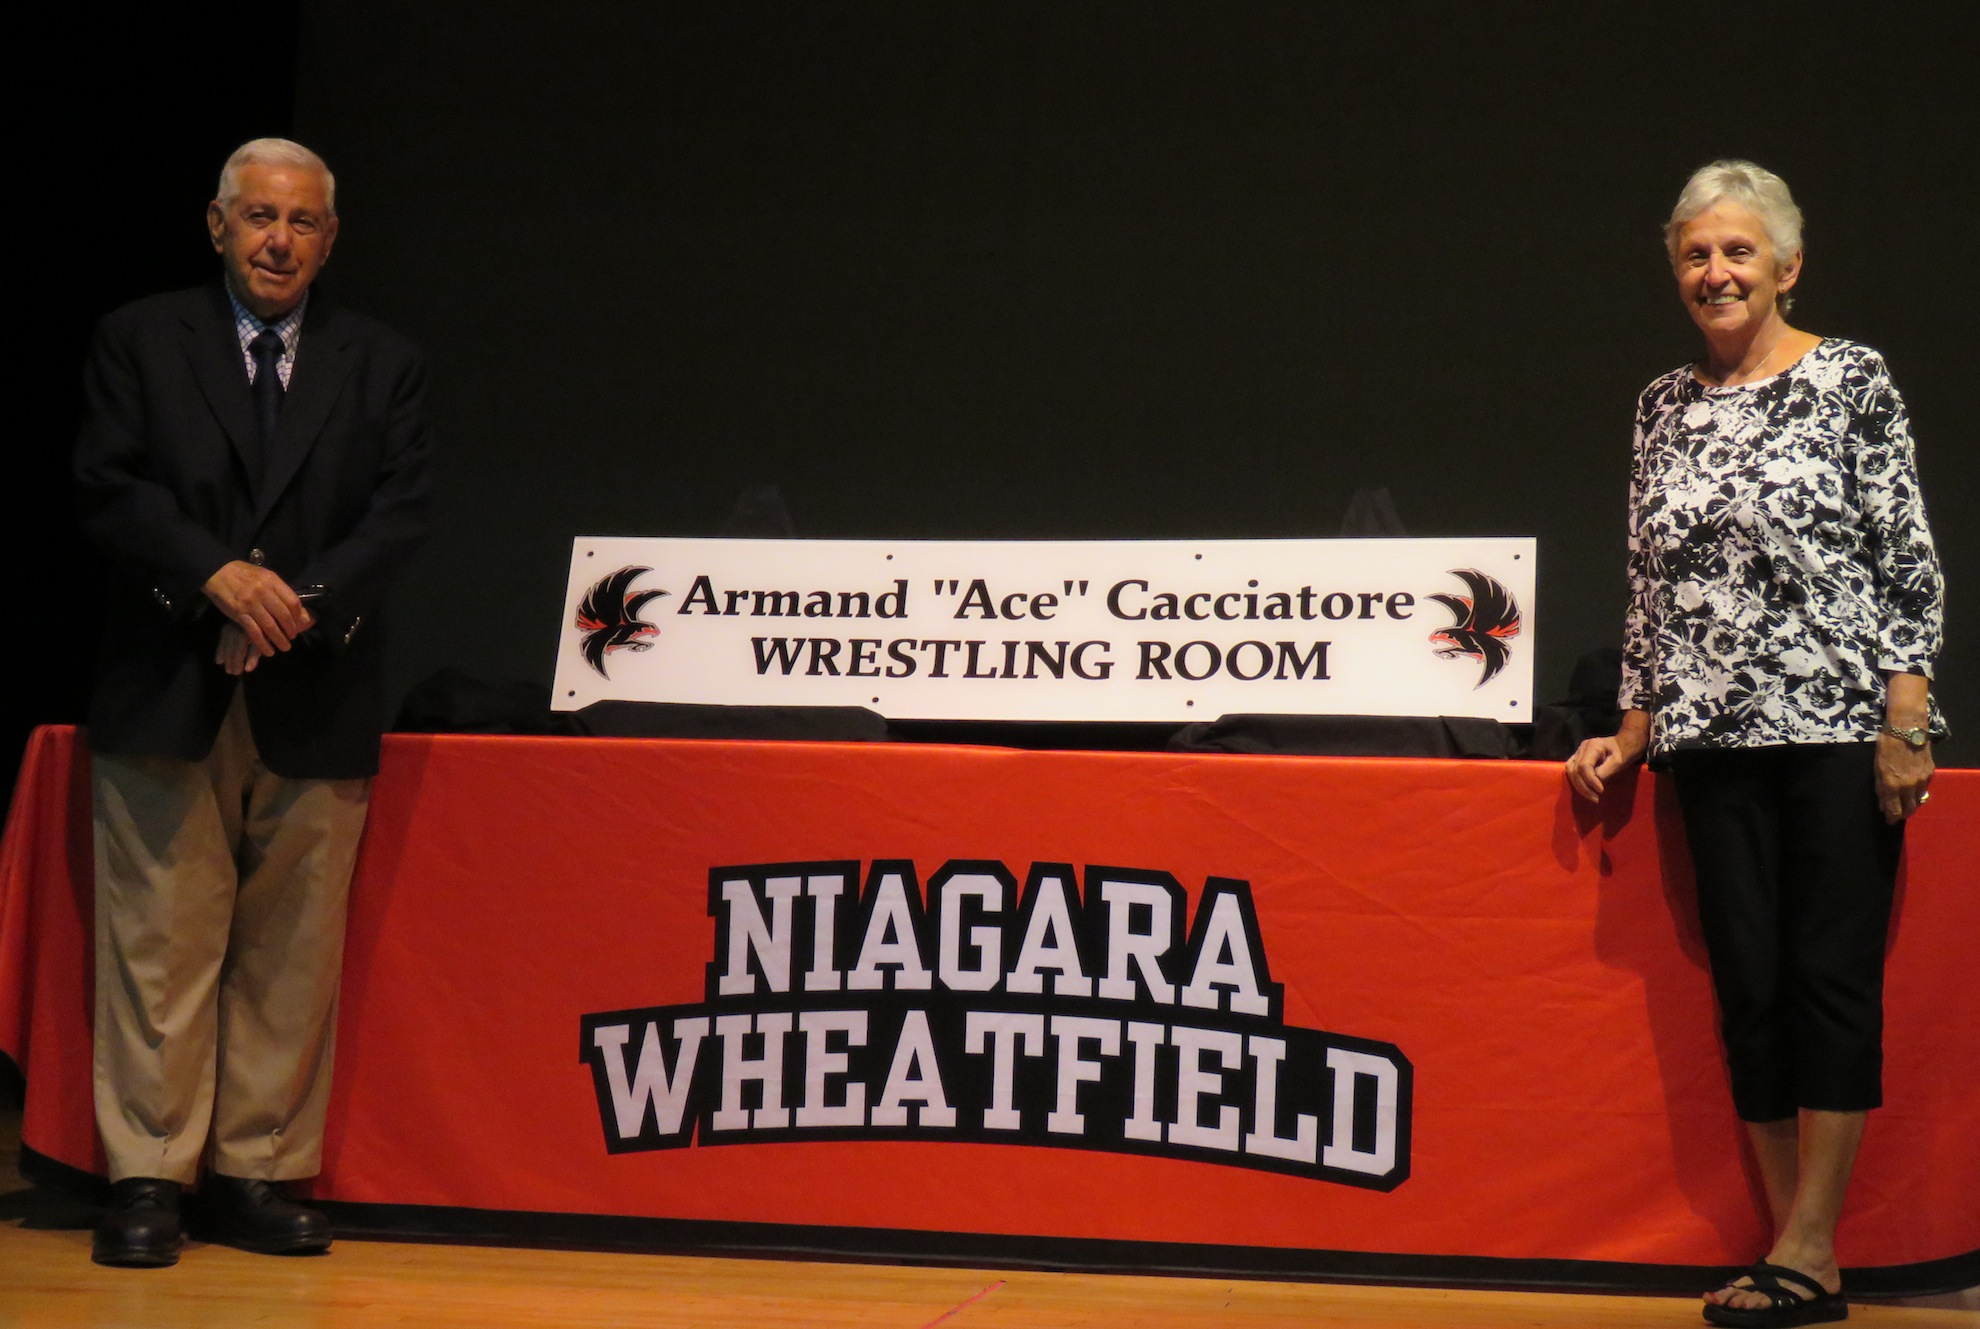 From left, Armand `Ace` Cacciatore and his wife, Mimi, pose with the new wrestling room sign dedicated in the coach's honor. (Photos by David Yarger)